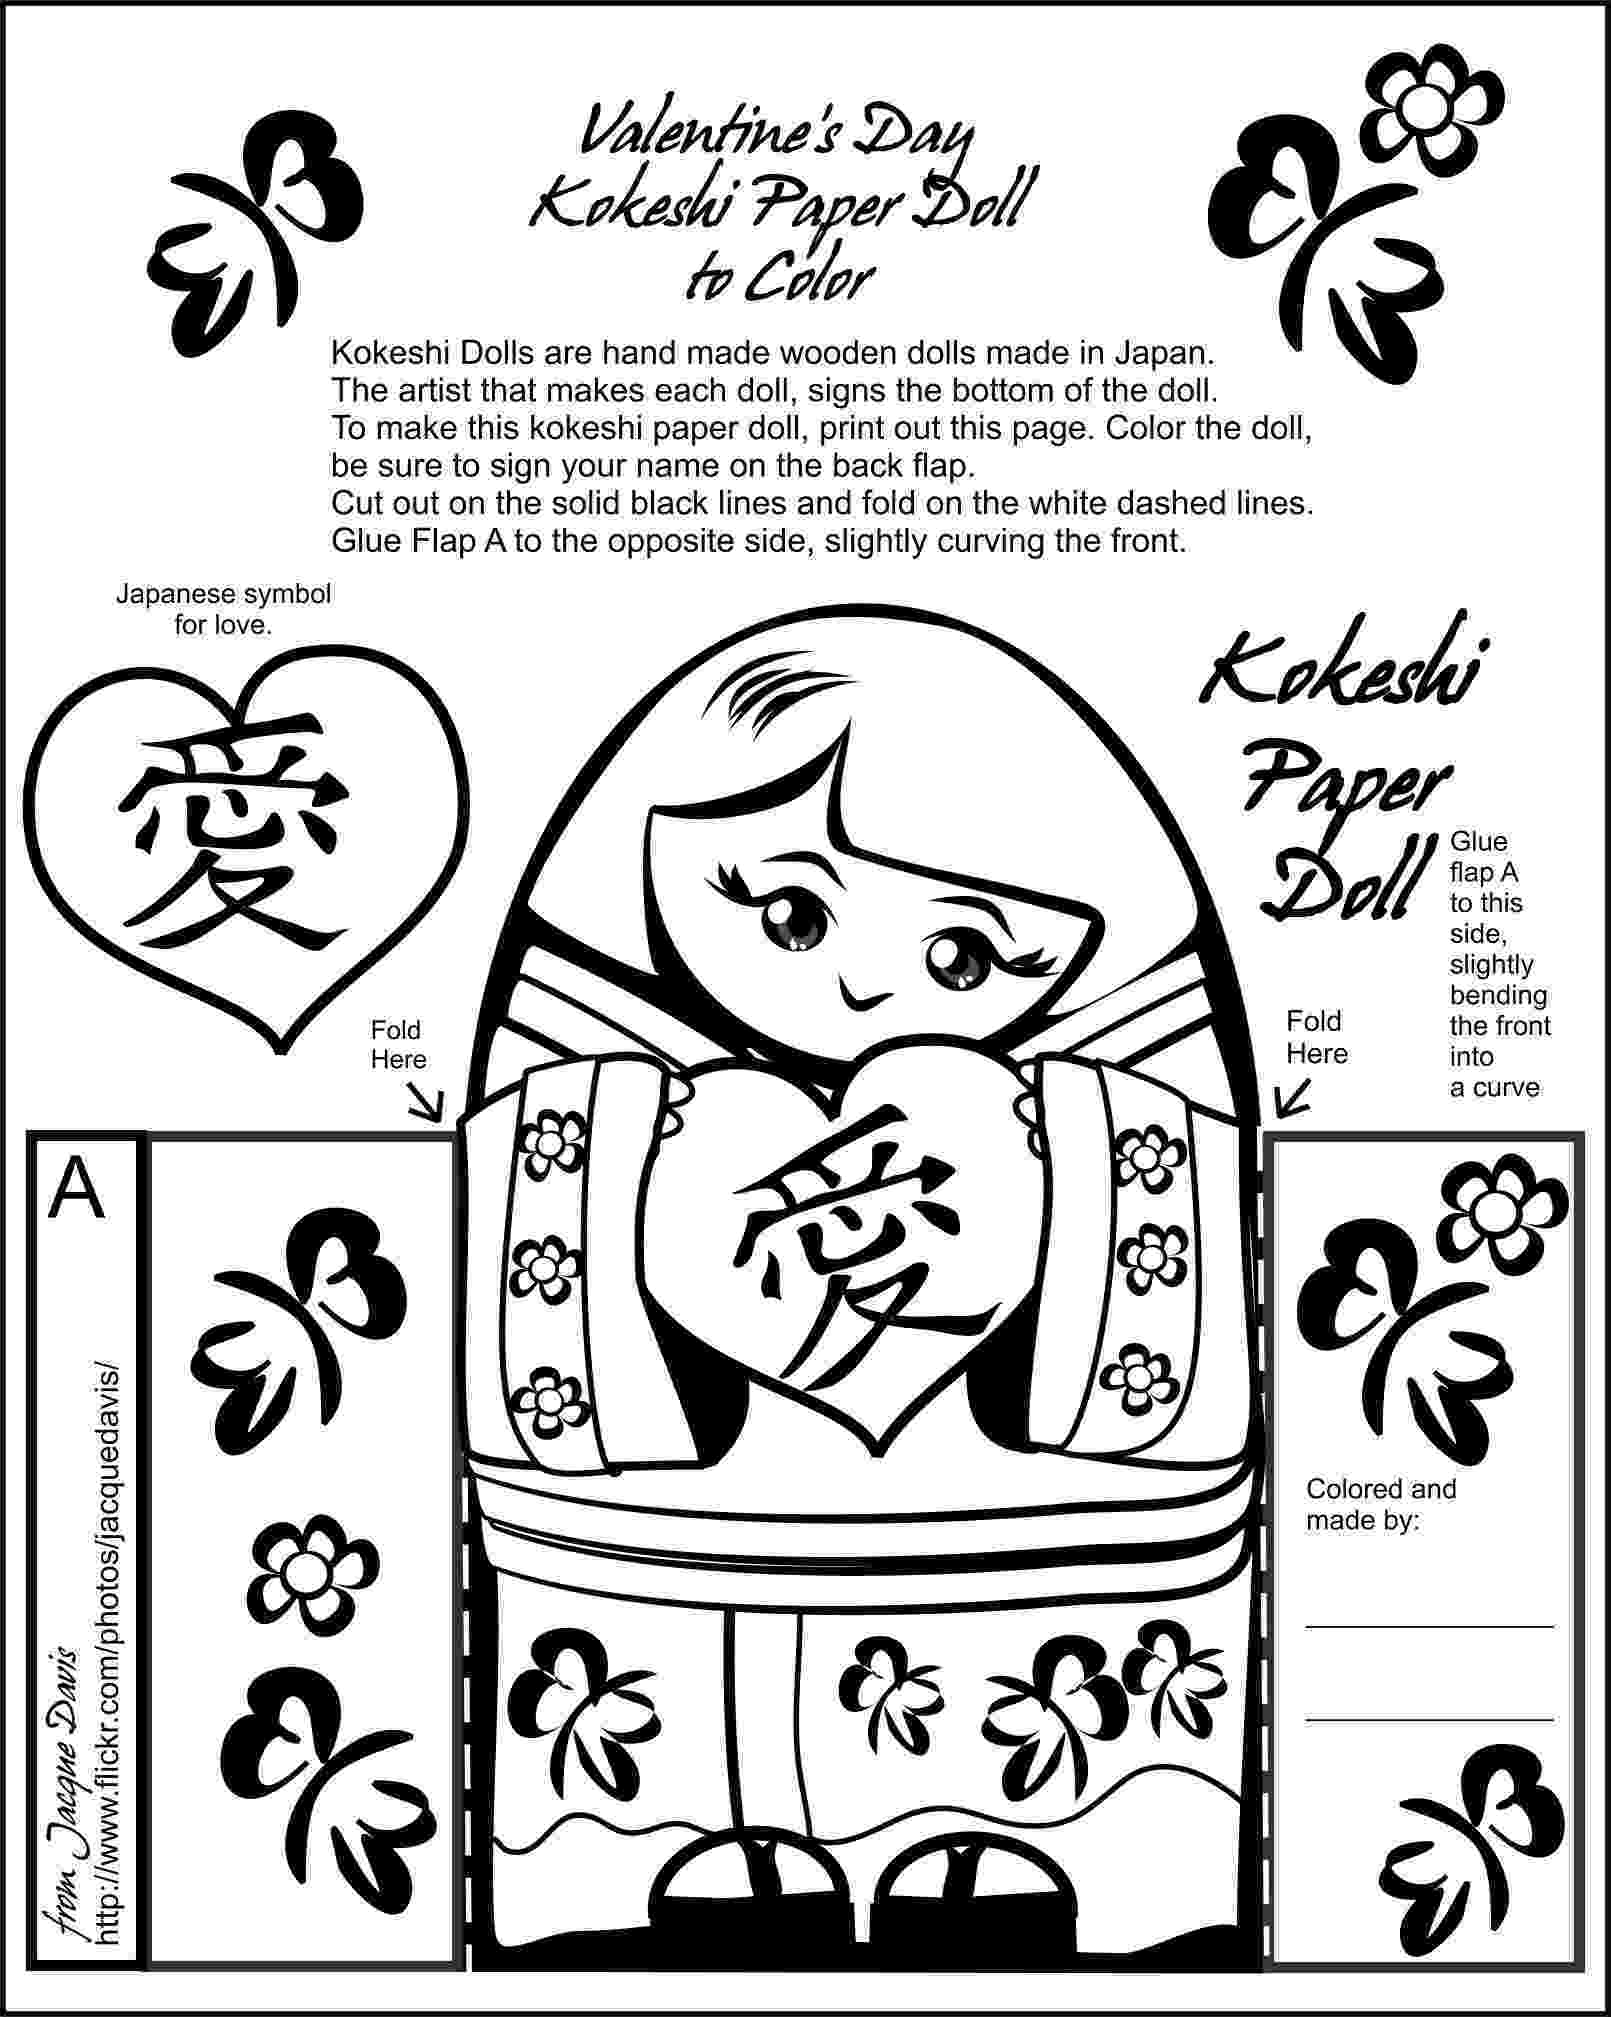 kokeshi dolls coloring pages valentine39s day kokeshi paper doll to color flickr dolls coloring pages kokeshi